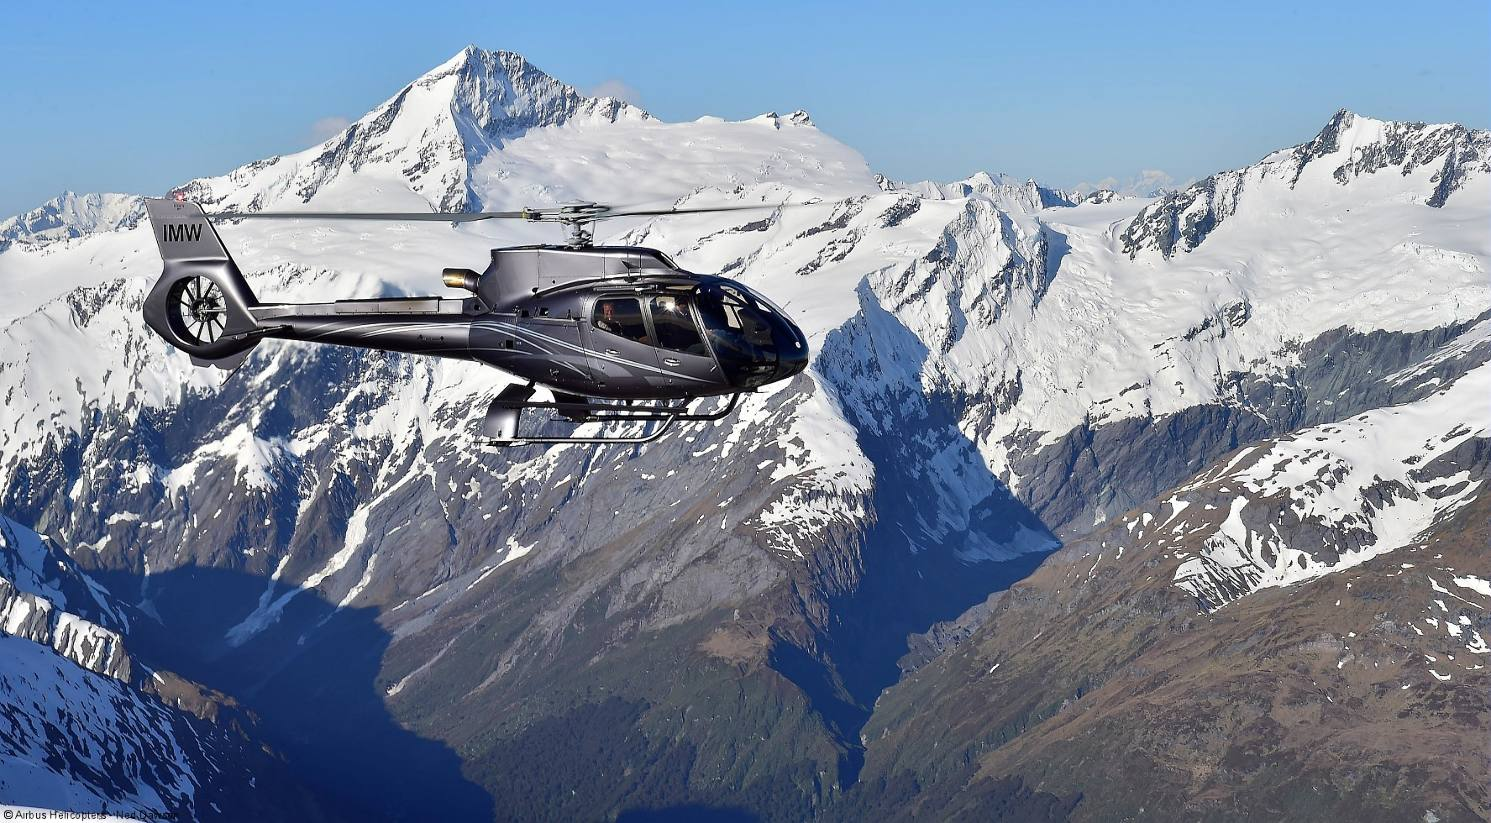 700ème H130 pour Airbus Helicopters